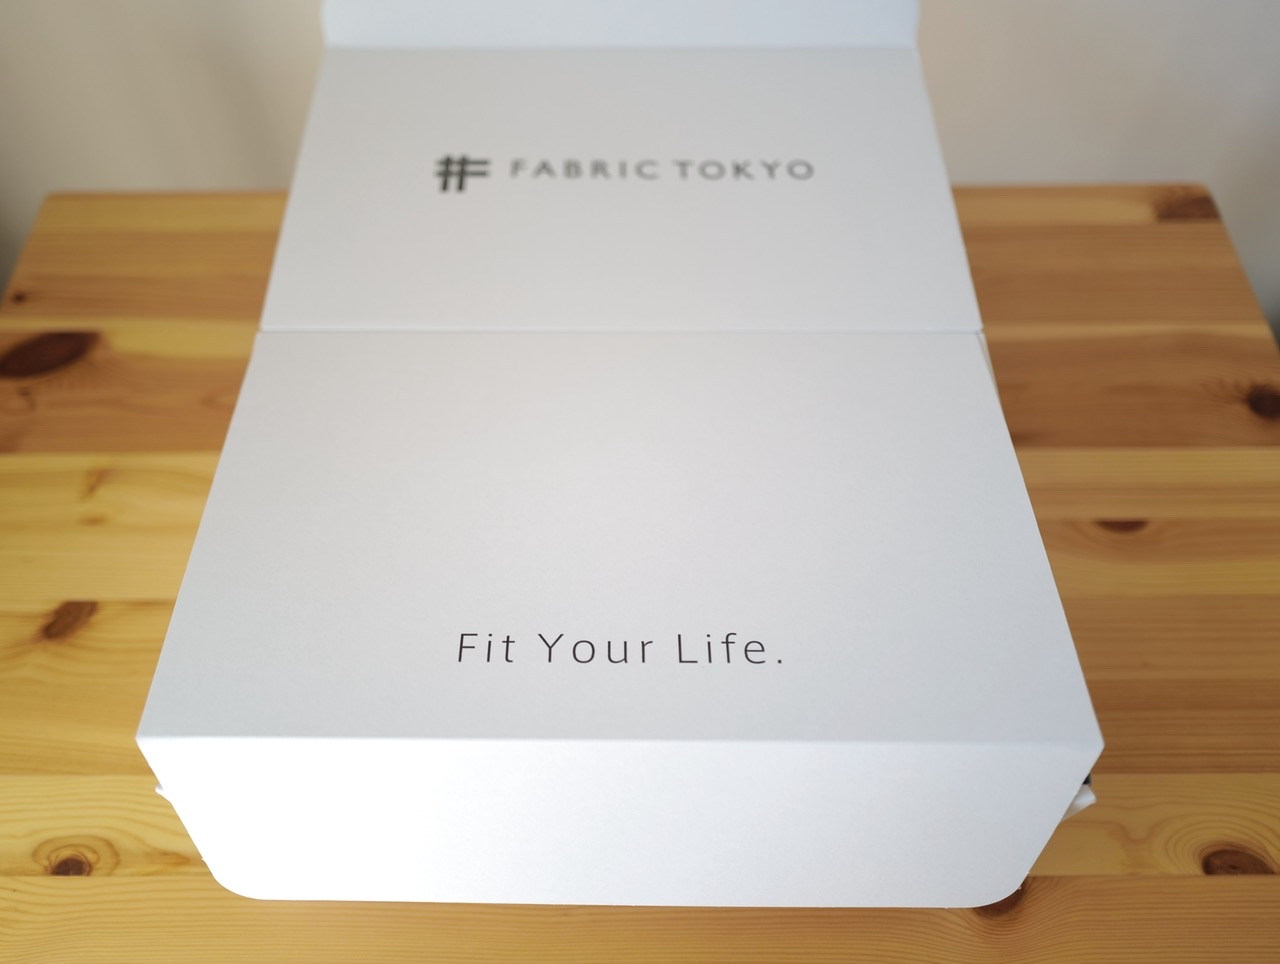 Fabric Tokyo 箱 Fit your life